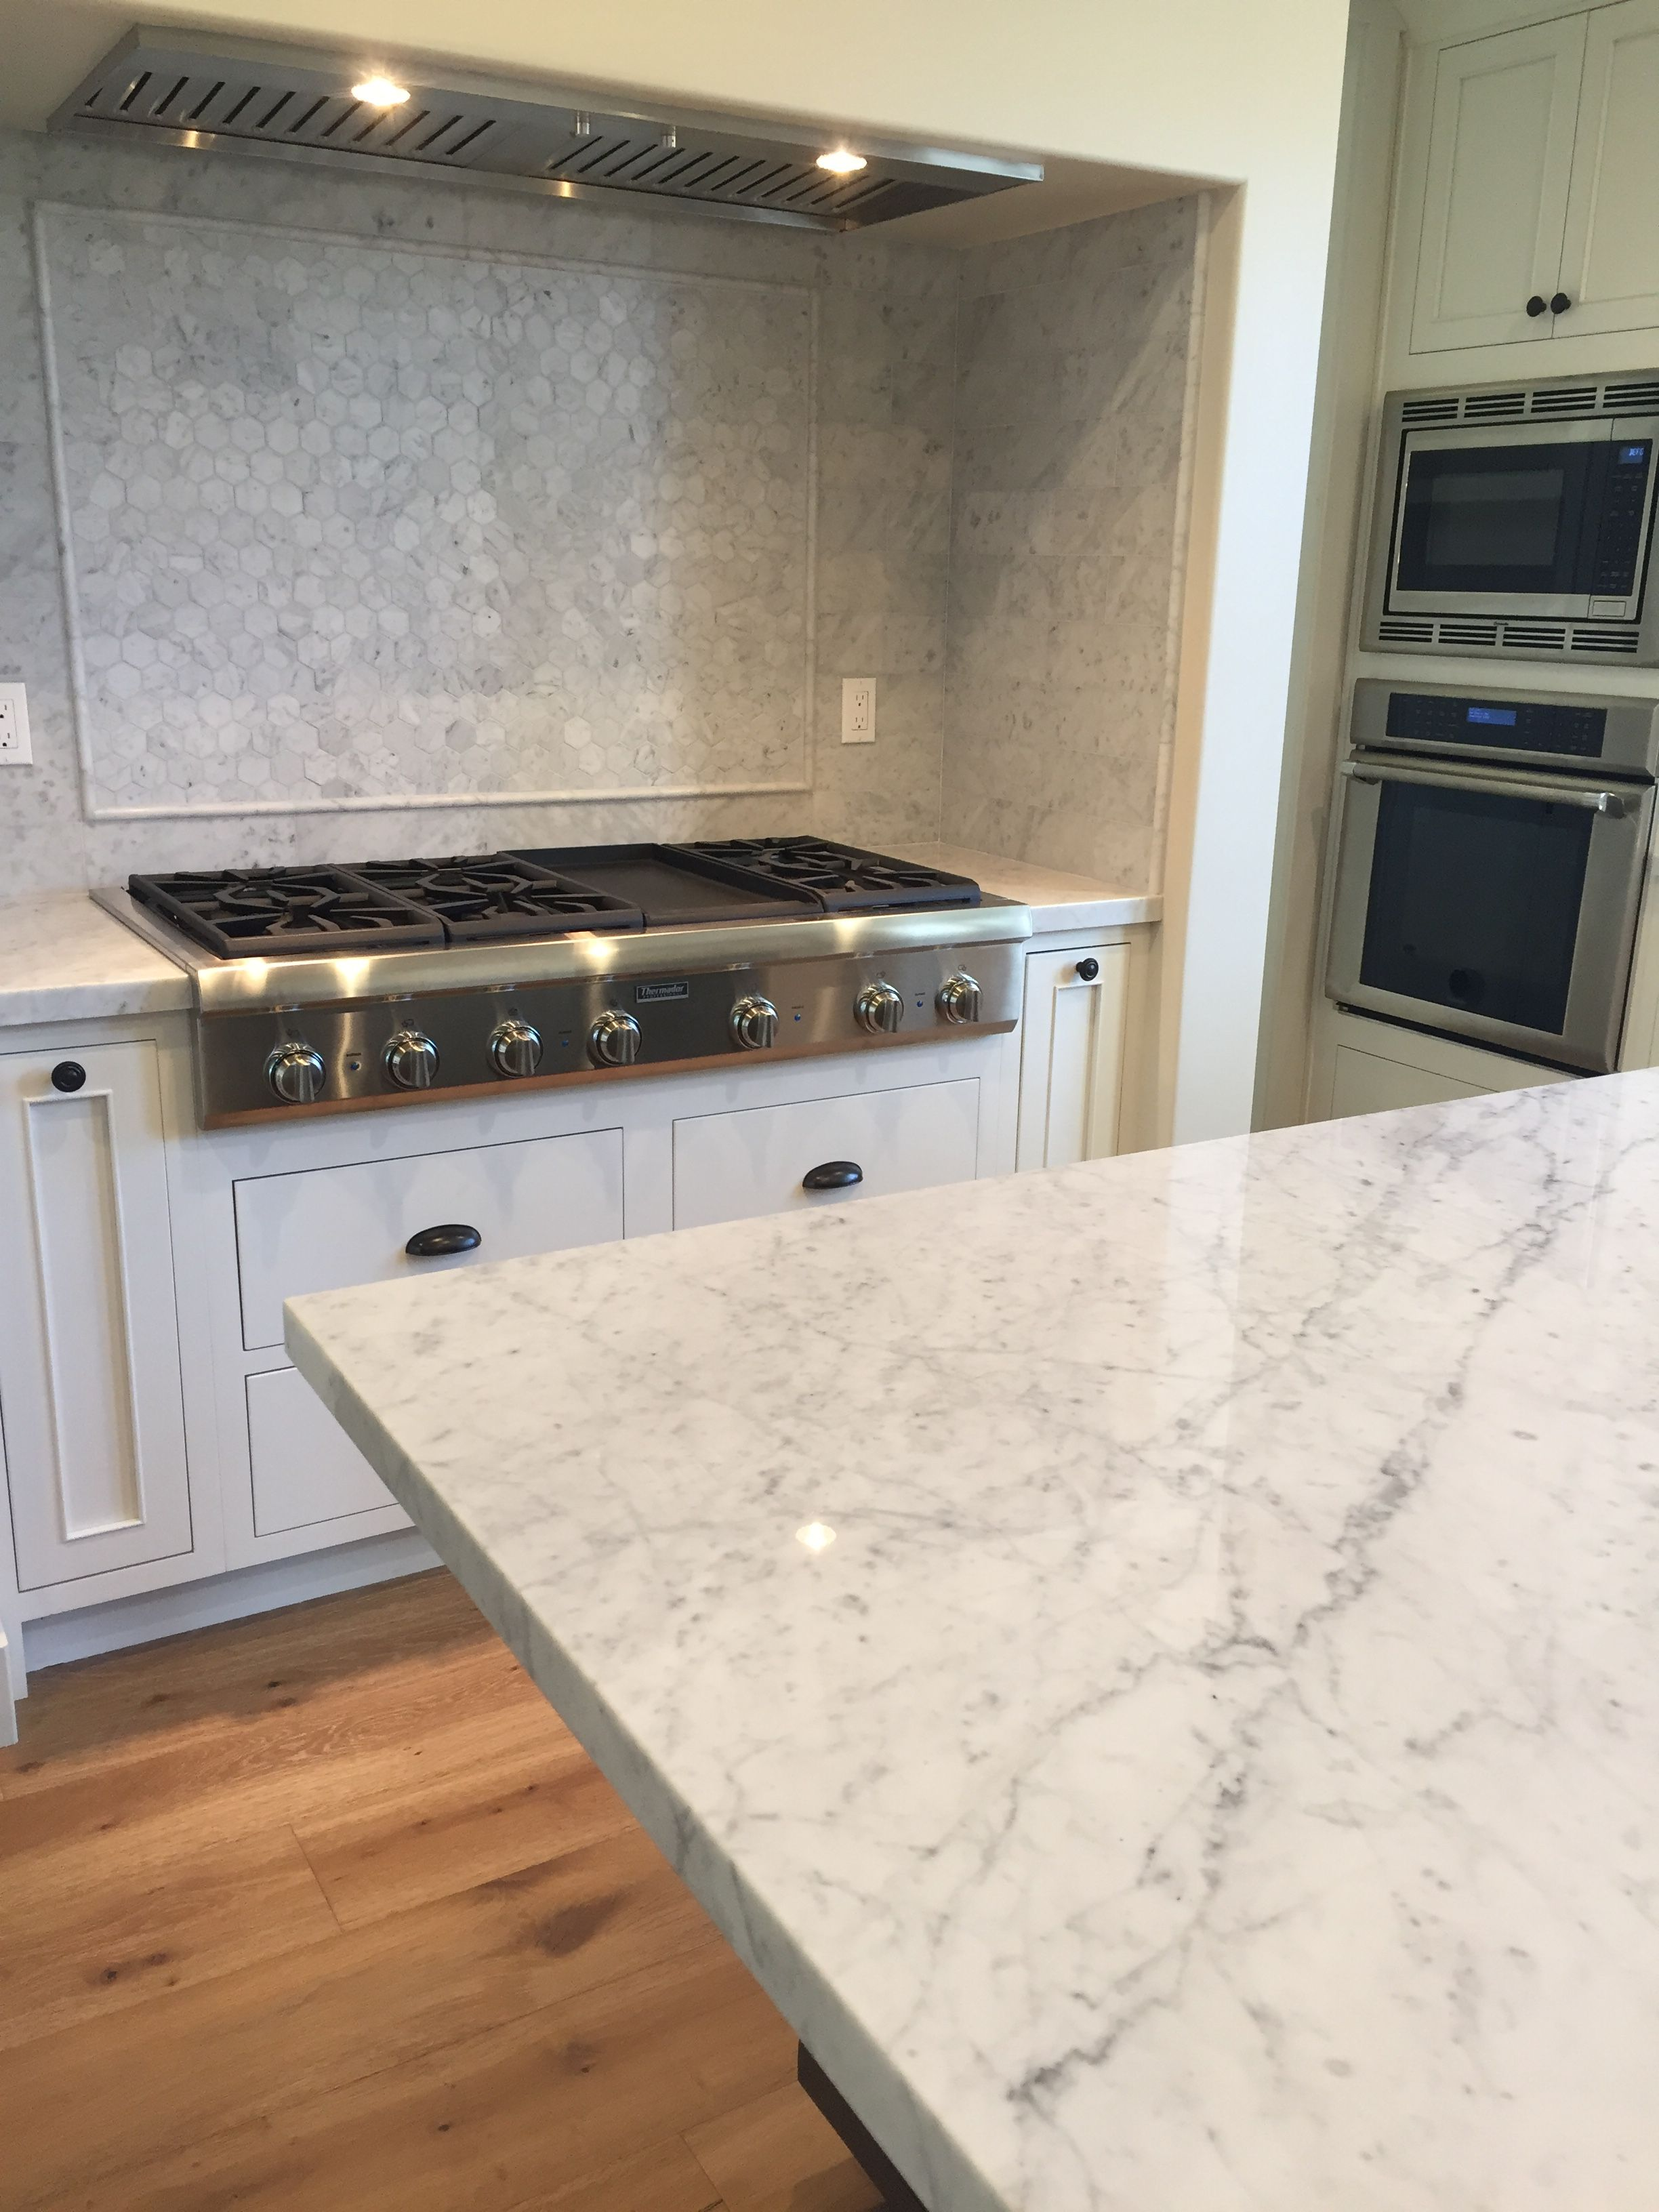 Carrara backsplash/countertop kitchen modern/old world